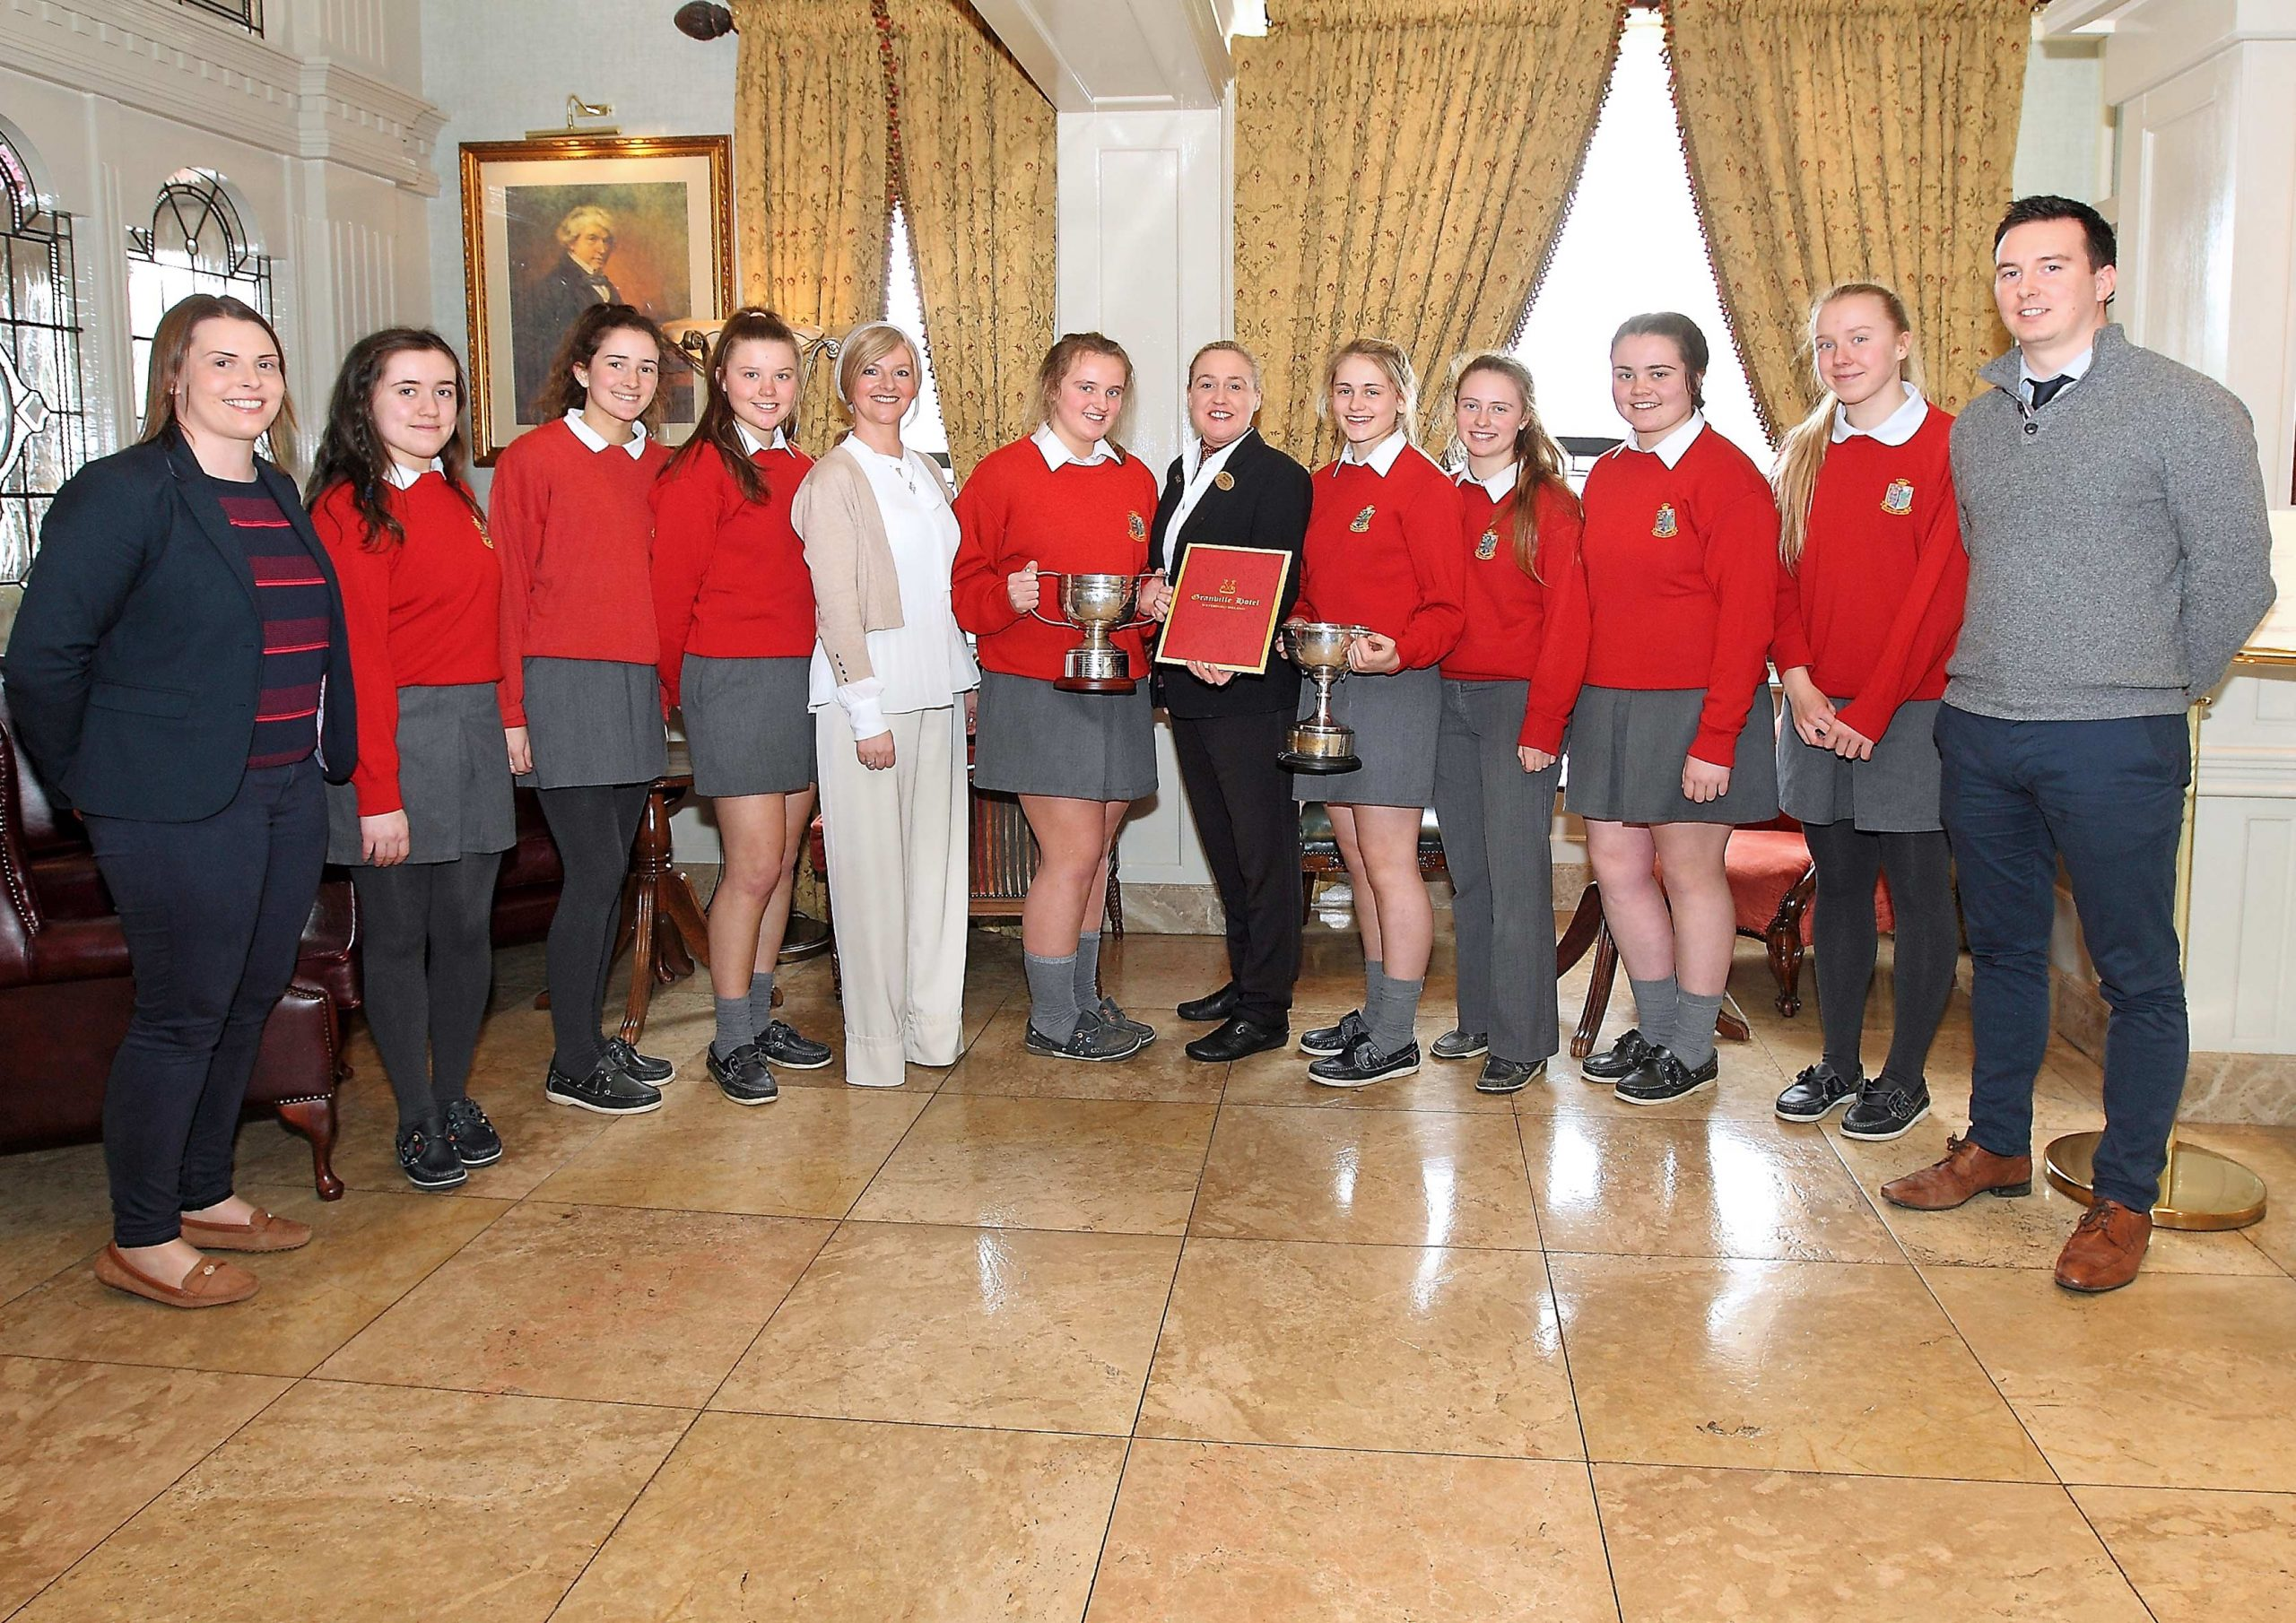 St. Angela's Waterford have secured the March WLR / Granvile Hotel GAA Award